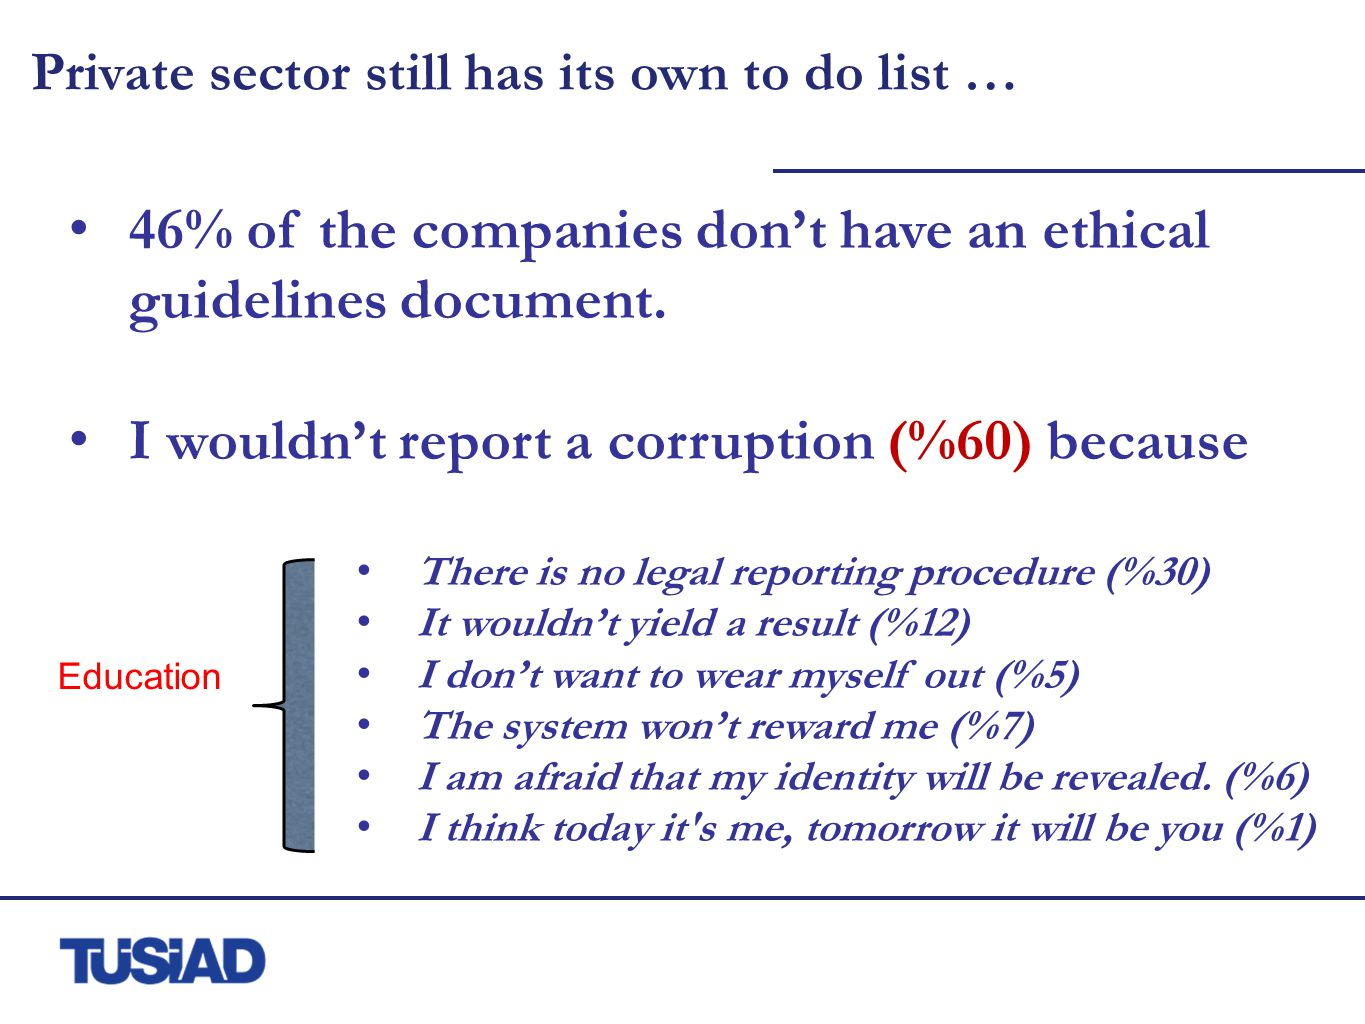 Private sector still has its own to do list … 46% of the companies don't have an ethical guidelines document.